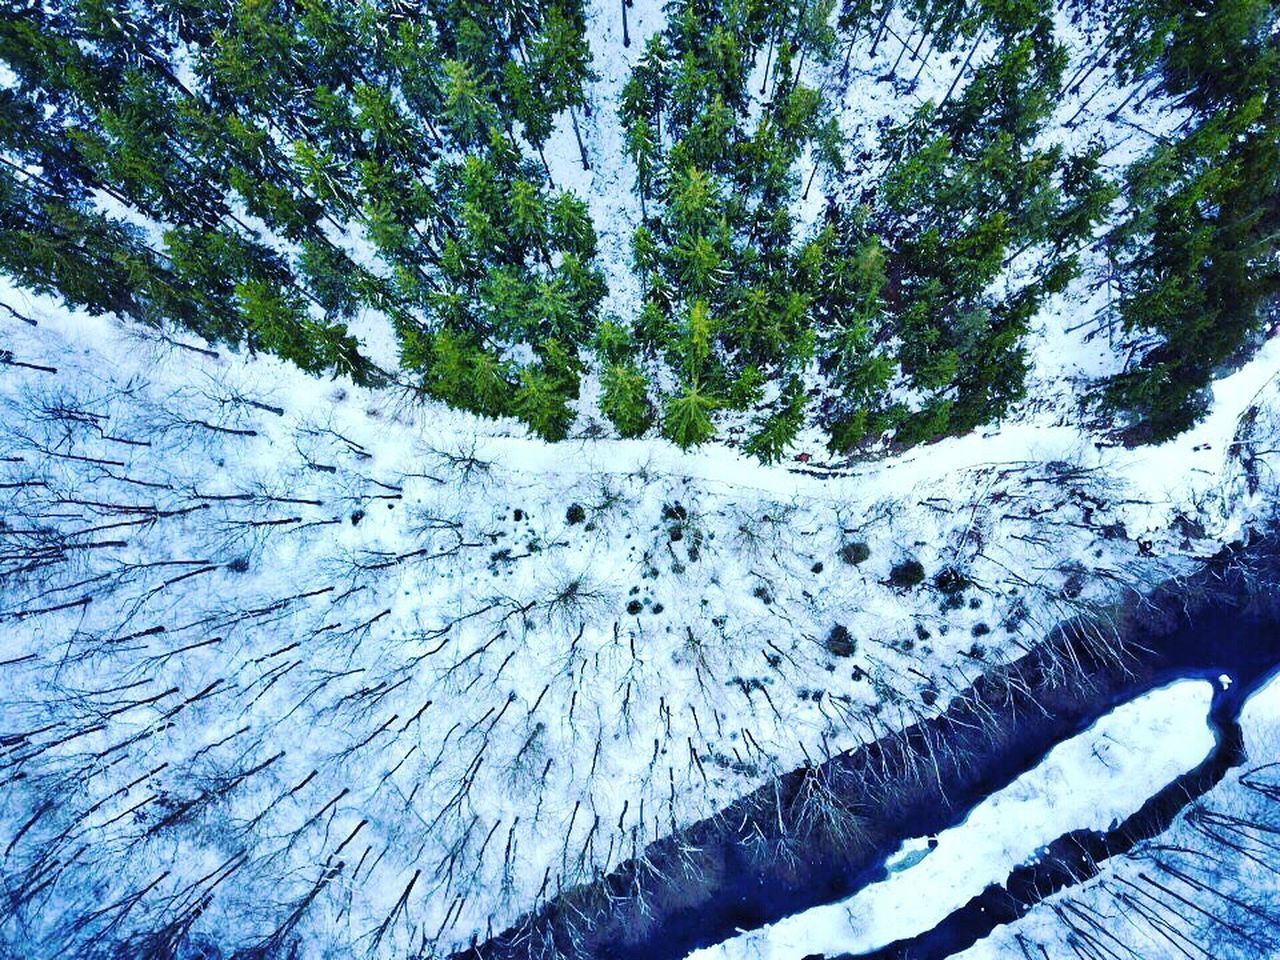 Nature Winter snow Tree beauty in Nature cold temperature outdoors day no people Growth Tree trunk sky scenics landscape dji www.airteam.camera Drones Birdseye View Drone dronephotography